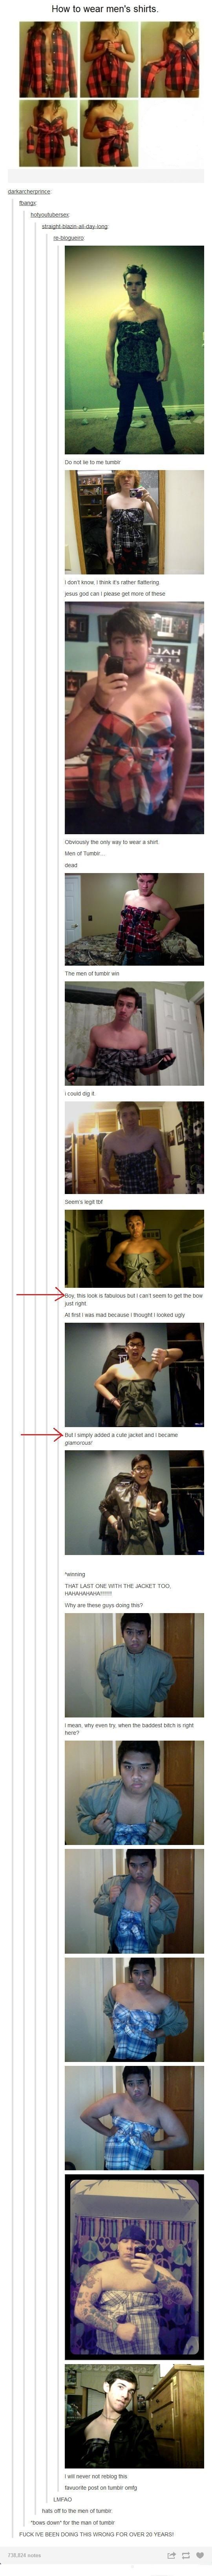 A Girl Posted How To Wear Mens Shirts? On Tumblr, How The Men On Tumblr Reacts To This is Freaking Awesome.: